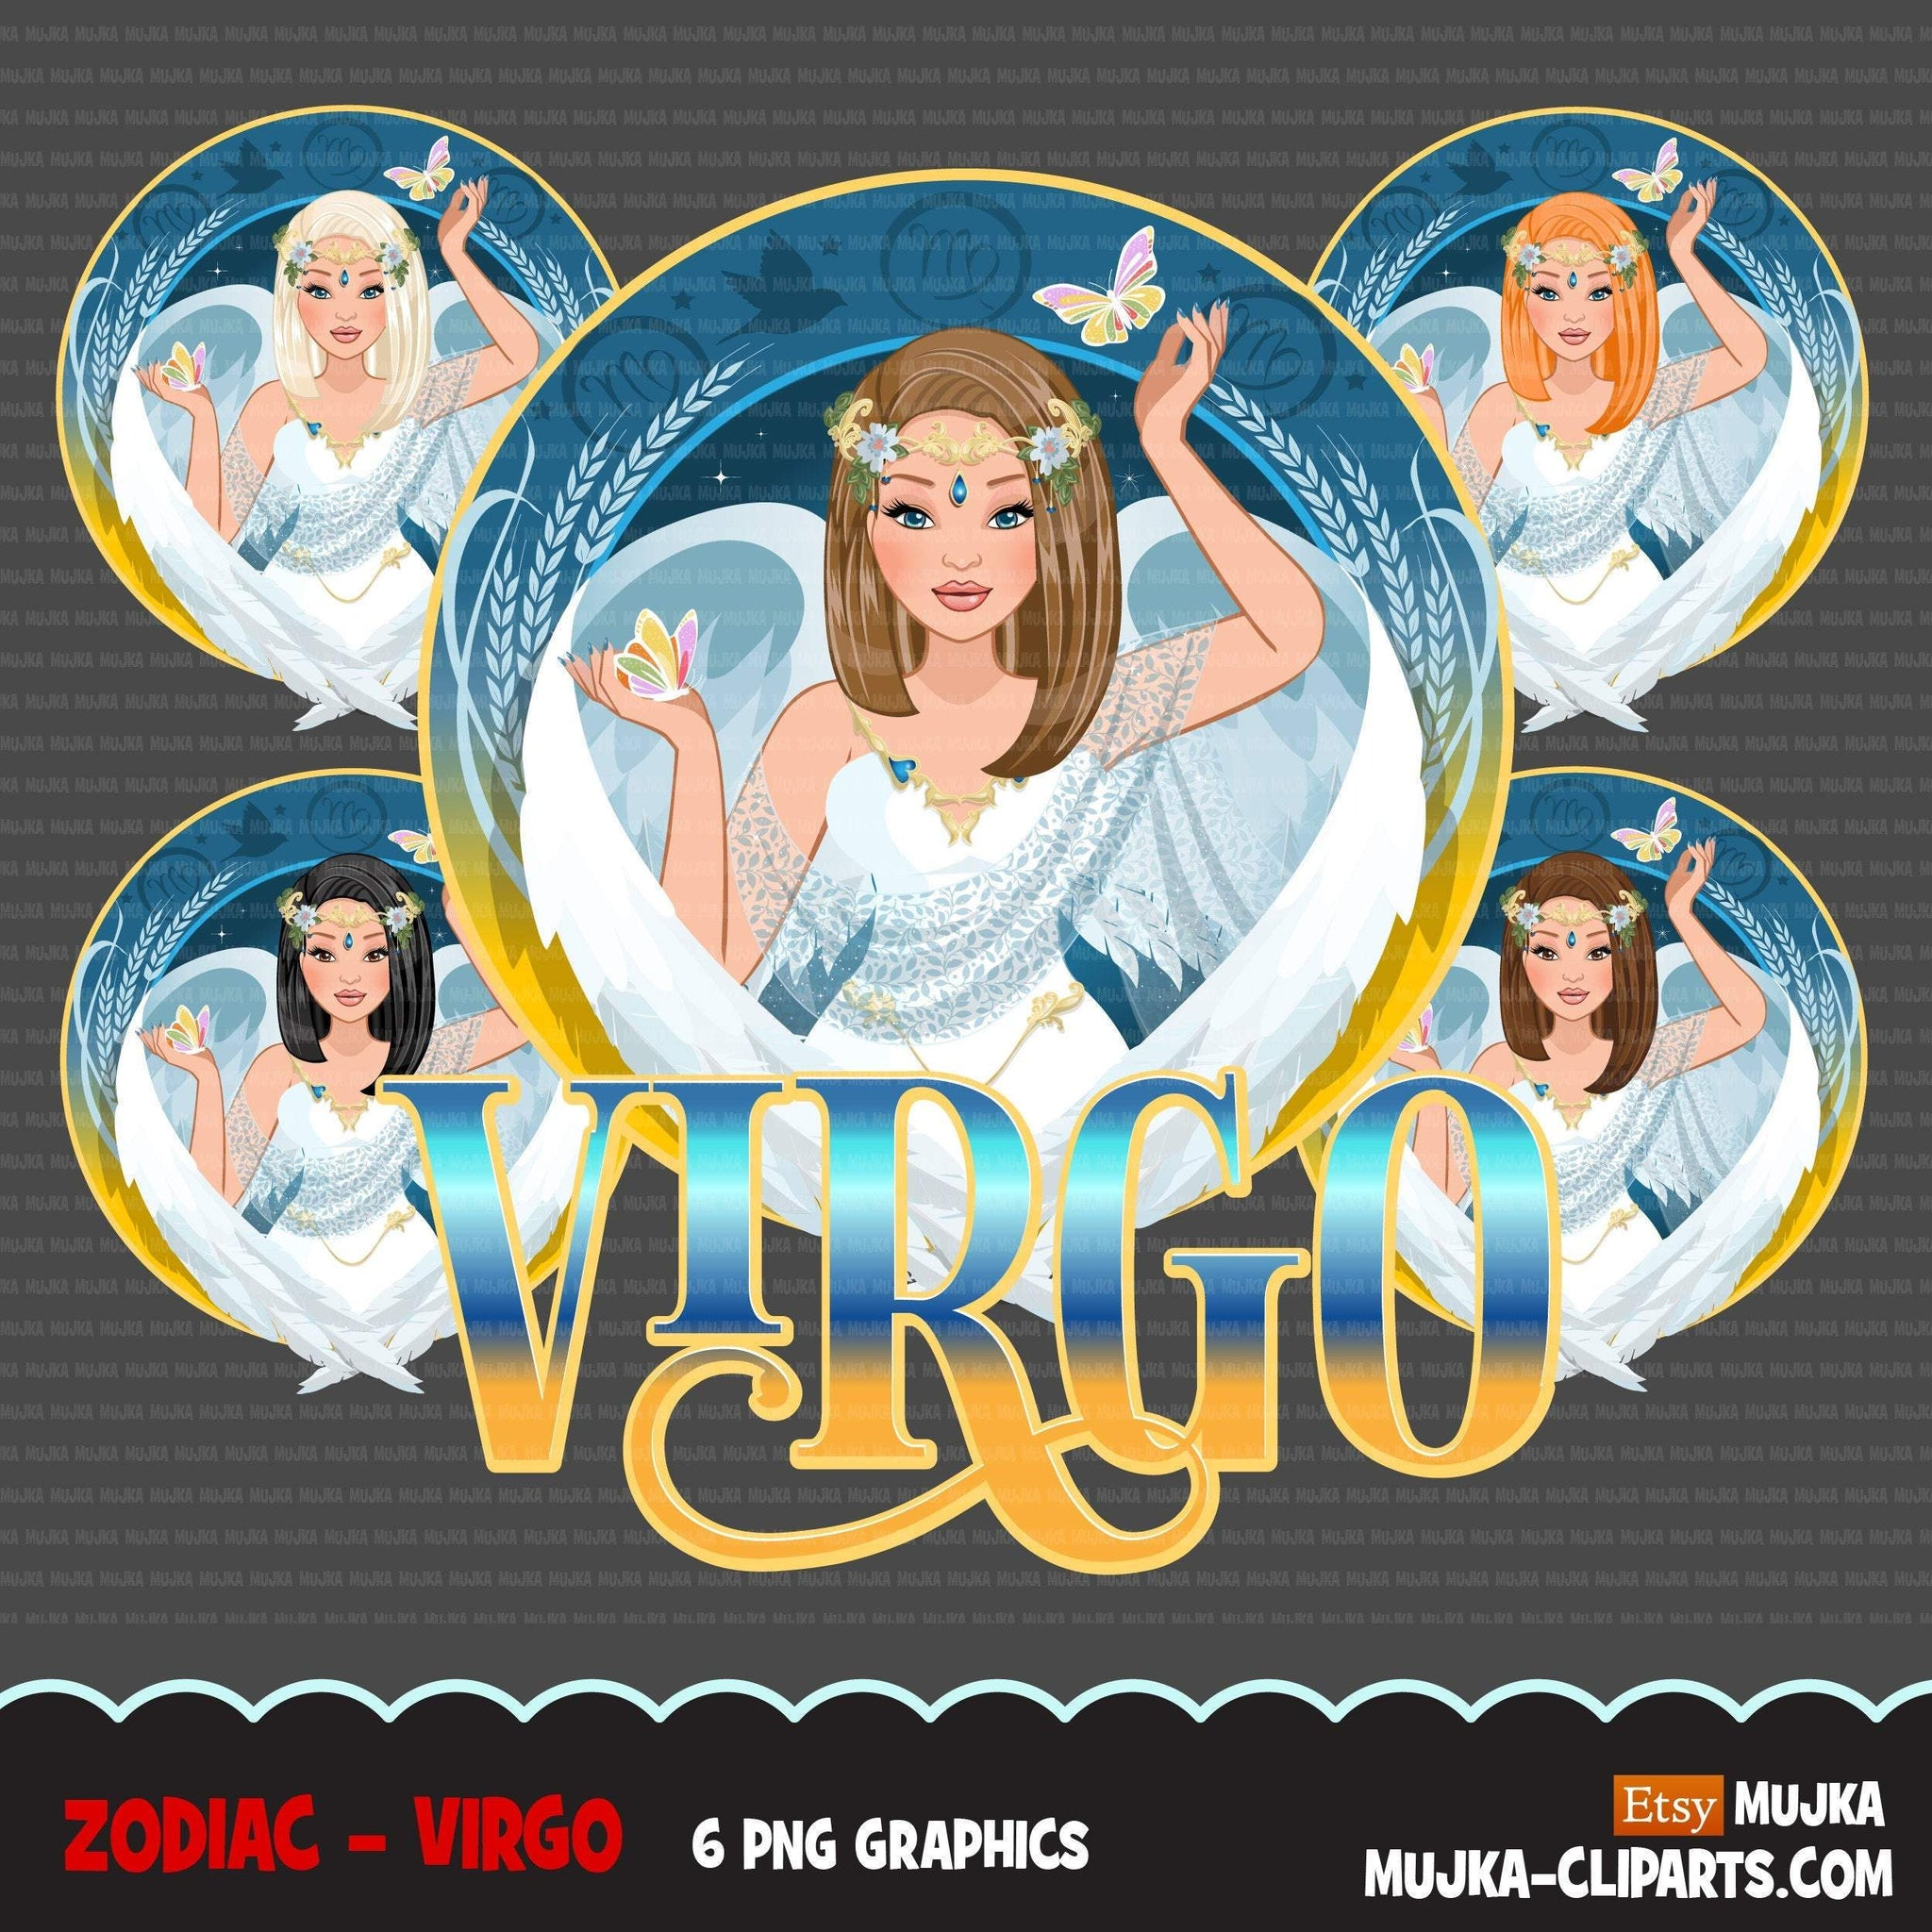 Zodiac Virgo Clipart, Png digital download, Sublimation Graphics for Cricut & Cameo, Caucasian straight hair Woman Horoscope sign designs